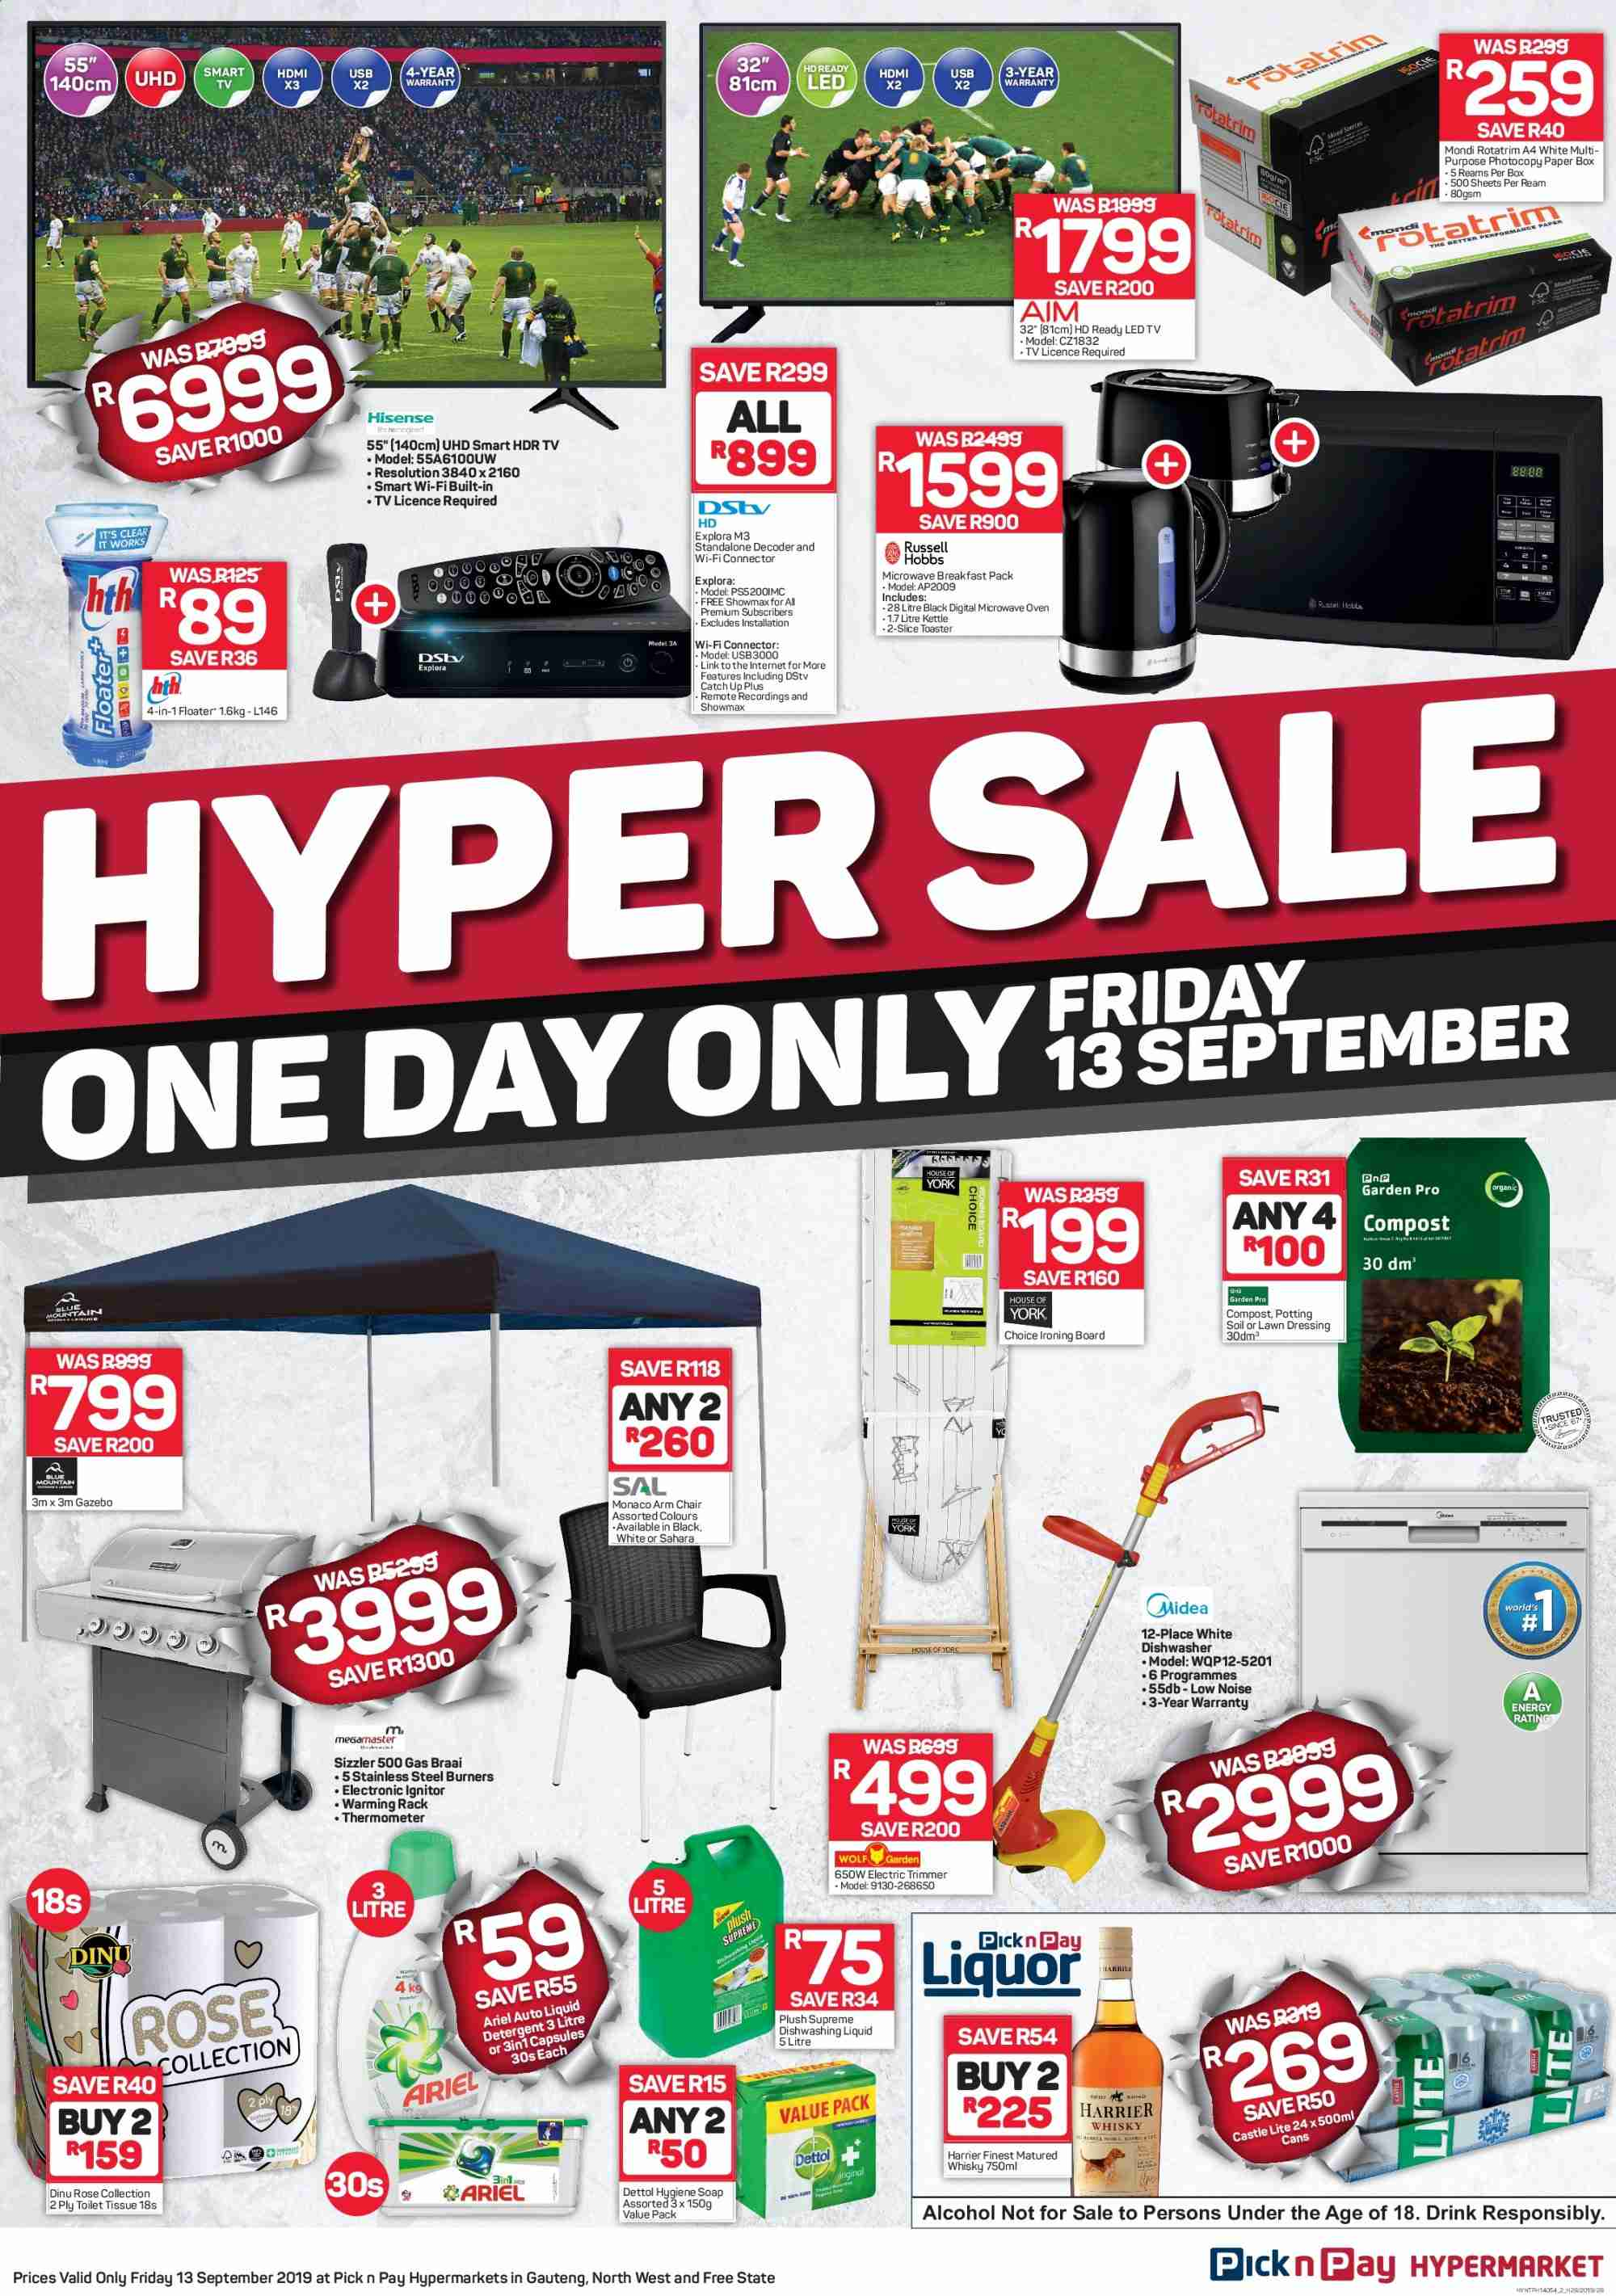 Pick n Pay special - 09.13.2019 - 09.13.2019 - Sales products - arm chair, capsules, dishwasher, led tv, microwave oven, rack, smart tv, thermometer, trimmer, whisky, wifi, hd ready, hdmi, chair, ps+, oven, dressing, toaster, ironing board, kettle, dettol, ariel, board, dishwashing liquid, toilet tissue, drink, decoder, gazebo, breakfast pack, toilet. Page 1.